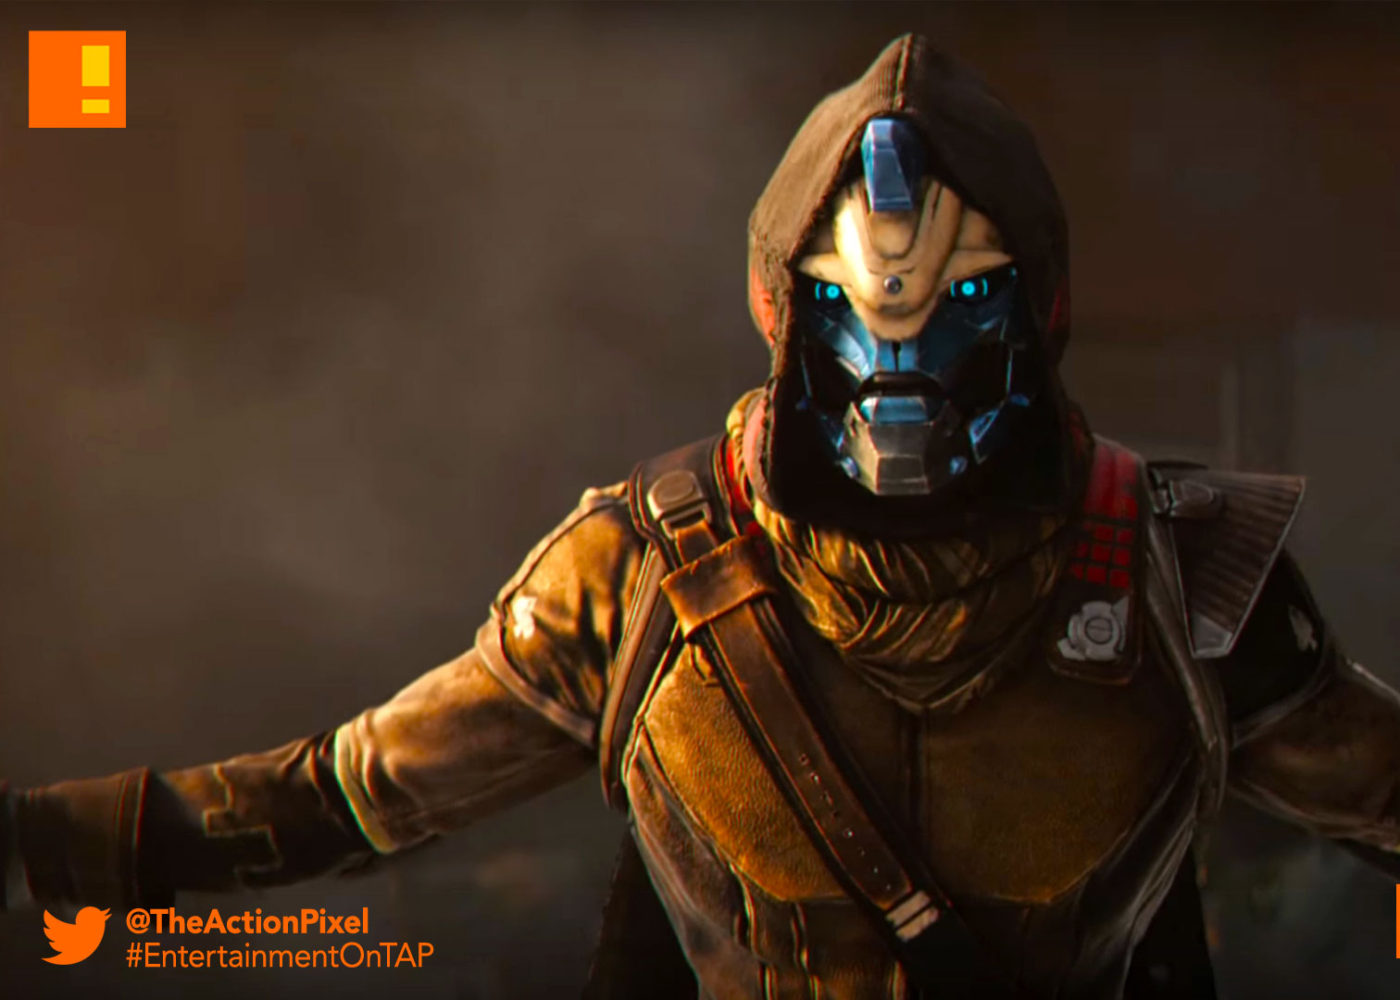 gaul, cayde, cayde-6, destiny 2, teaser, destiny 2 , Leaked poster, poster, destiny, the action pixel, entertainment on tap, rally the troops, worldwide reveal trailer, trailer,